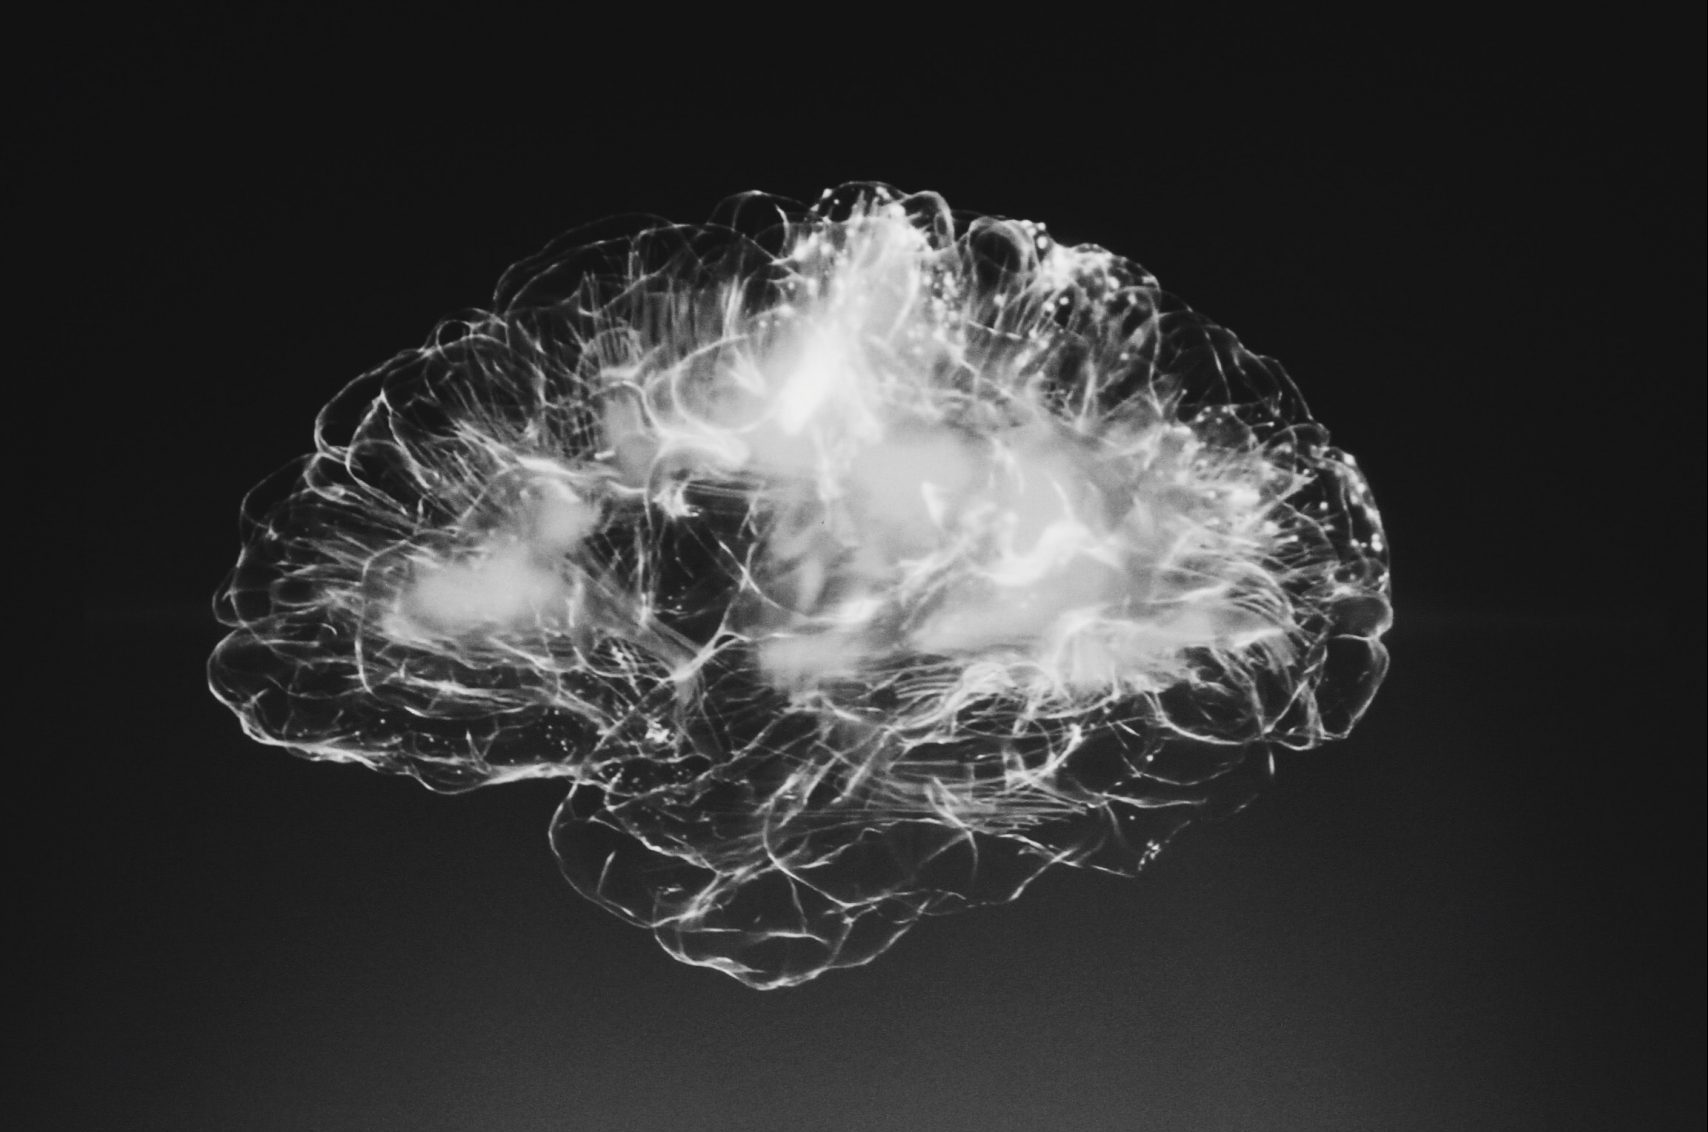 White, glowing neural network in the brain on a black background